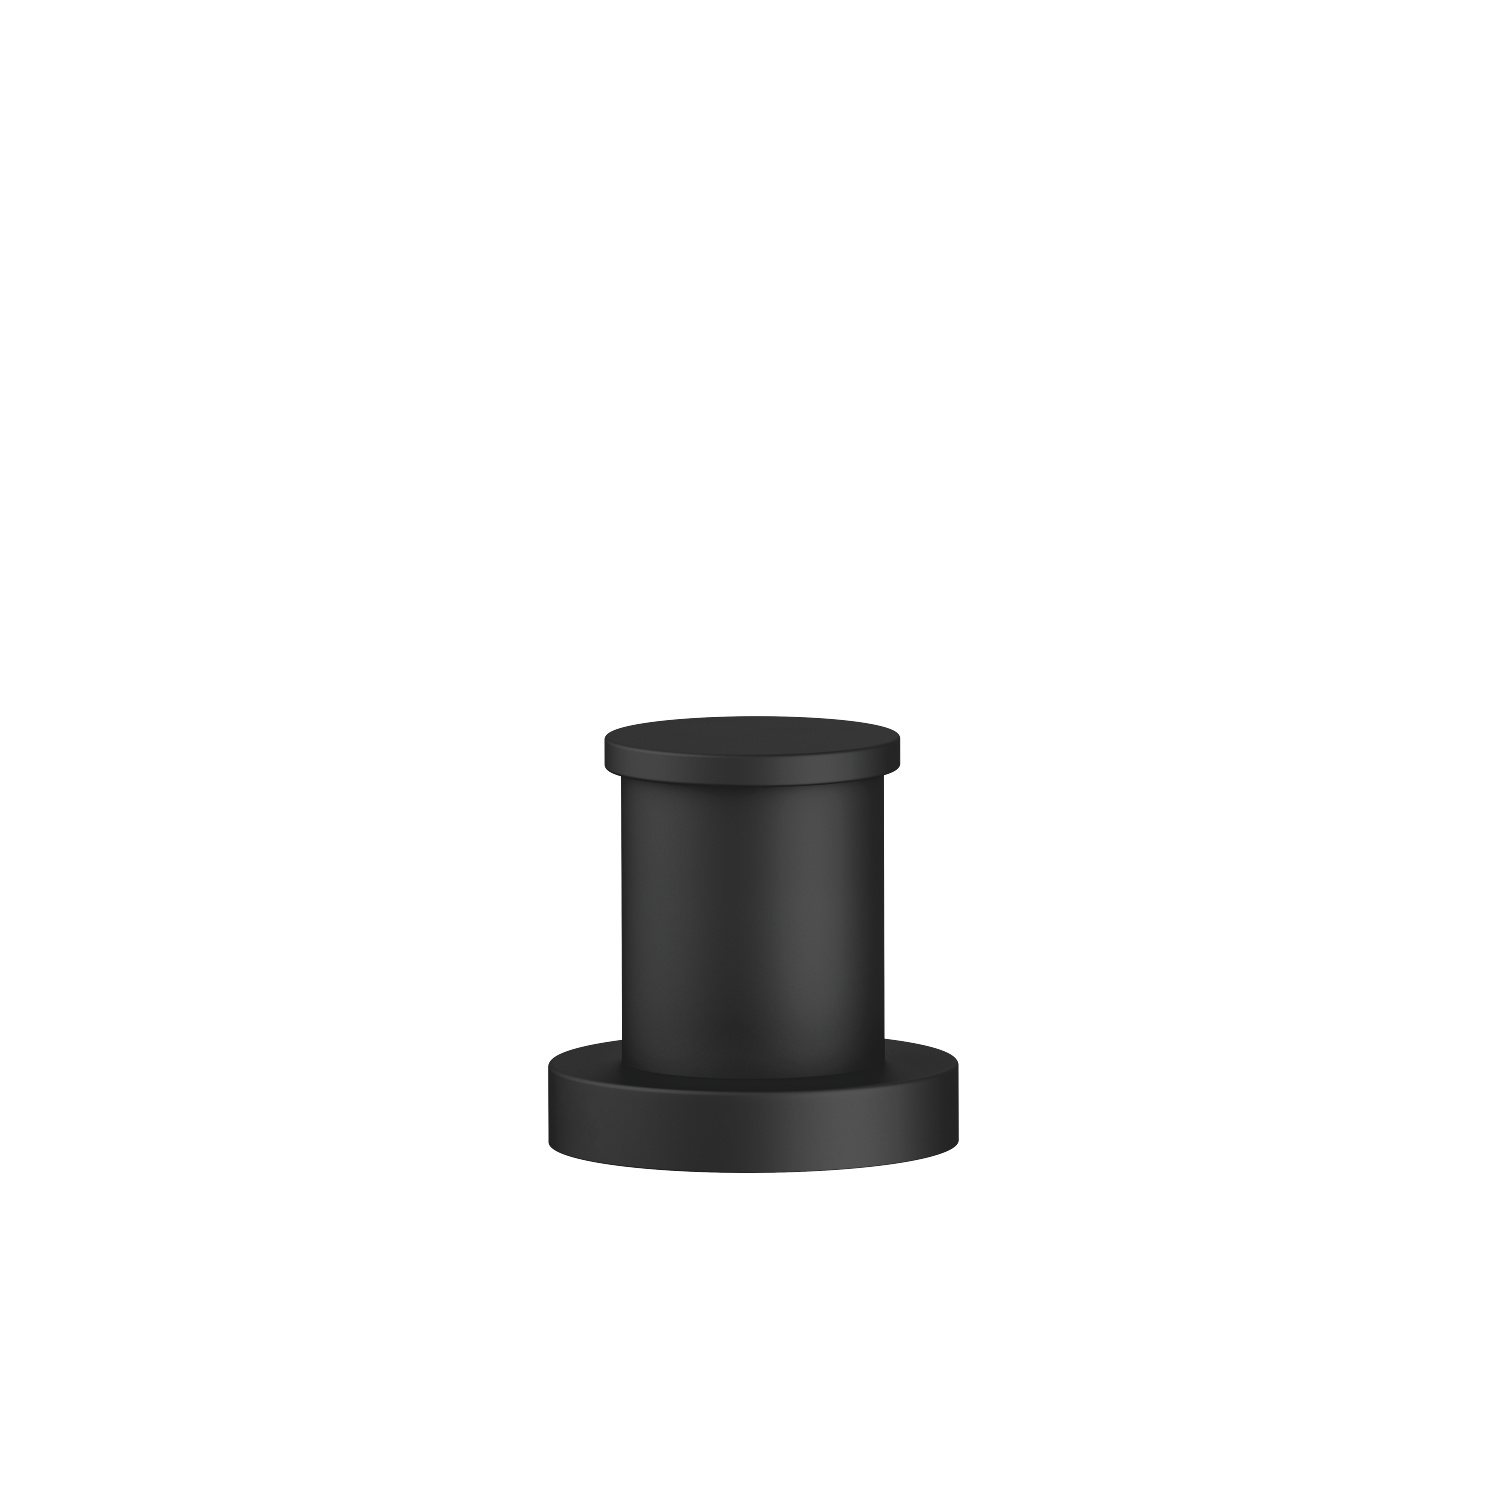 Two-way diverter for bath rim or tile edge installation - matt black